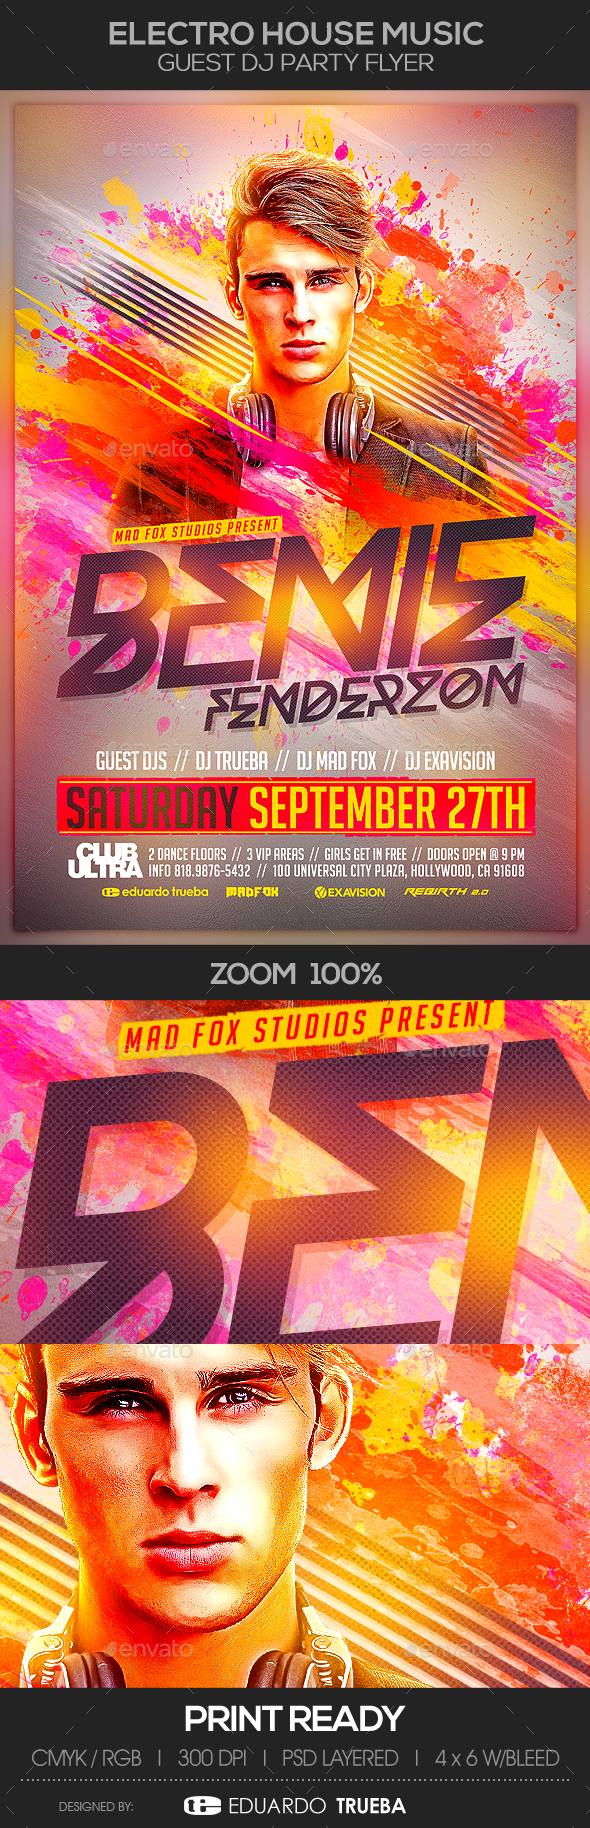 Electro House Music Guest Dj Party Flyer - Clubs & Parties Events